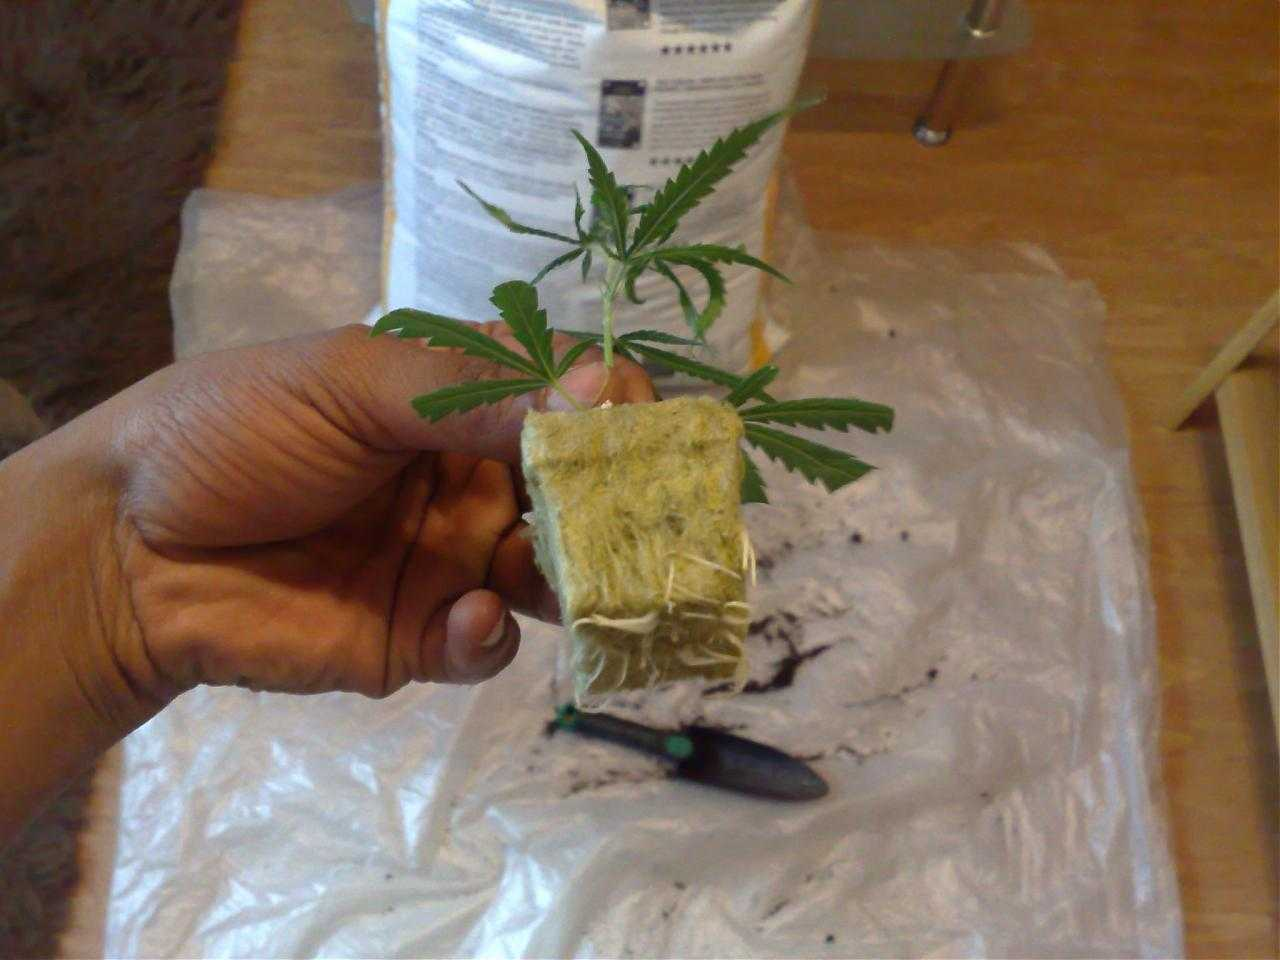 rooted marijuana clone in rockwool